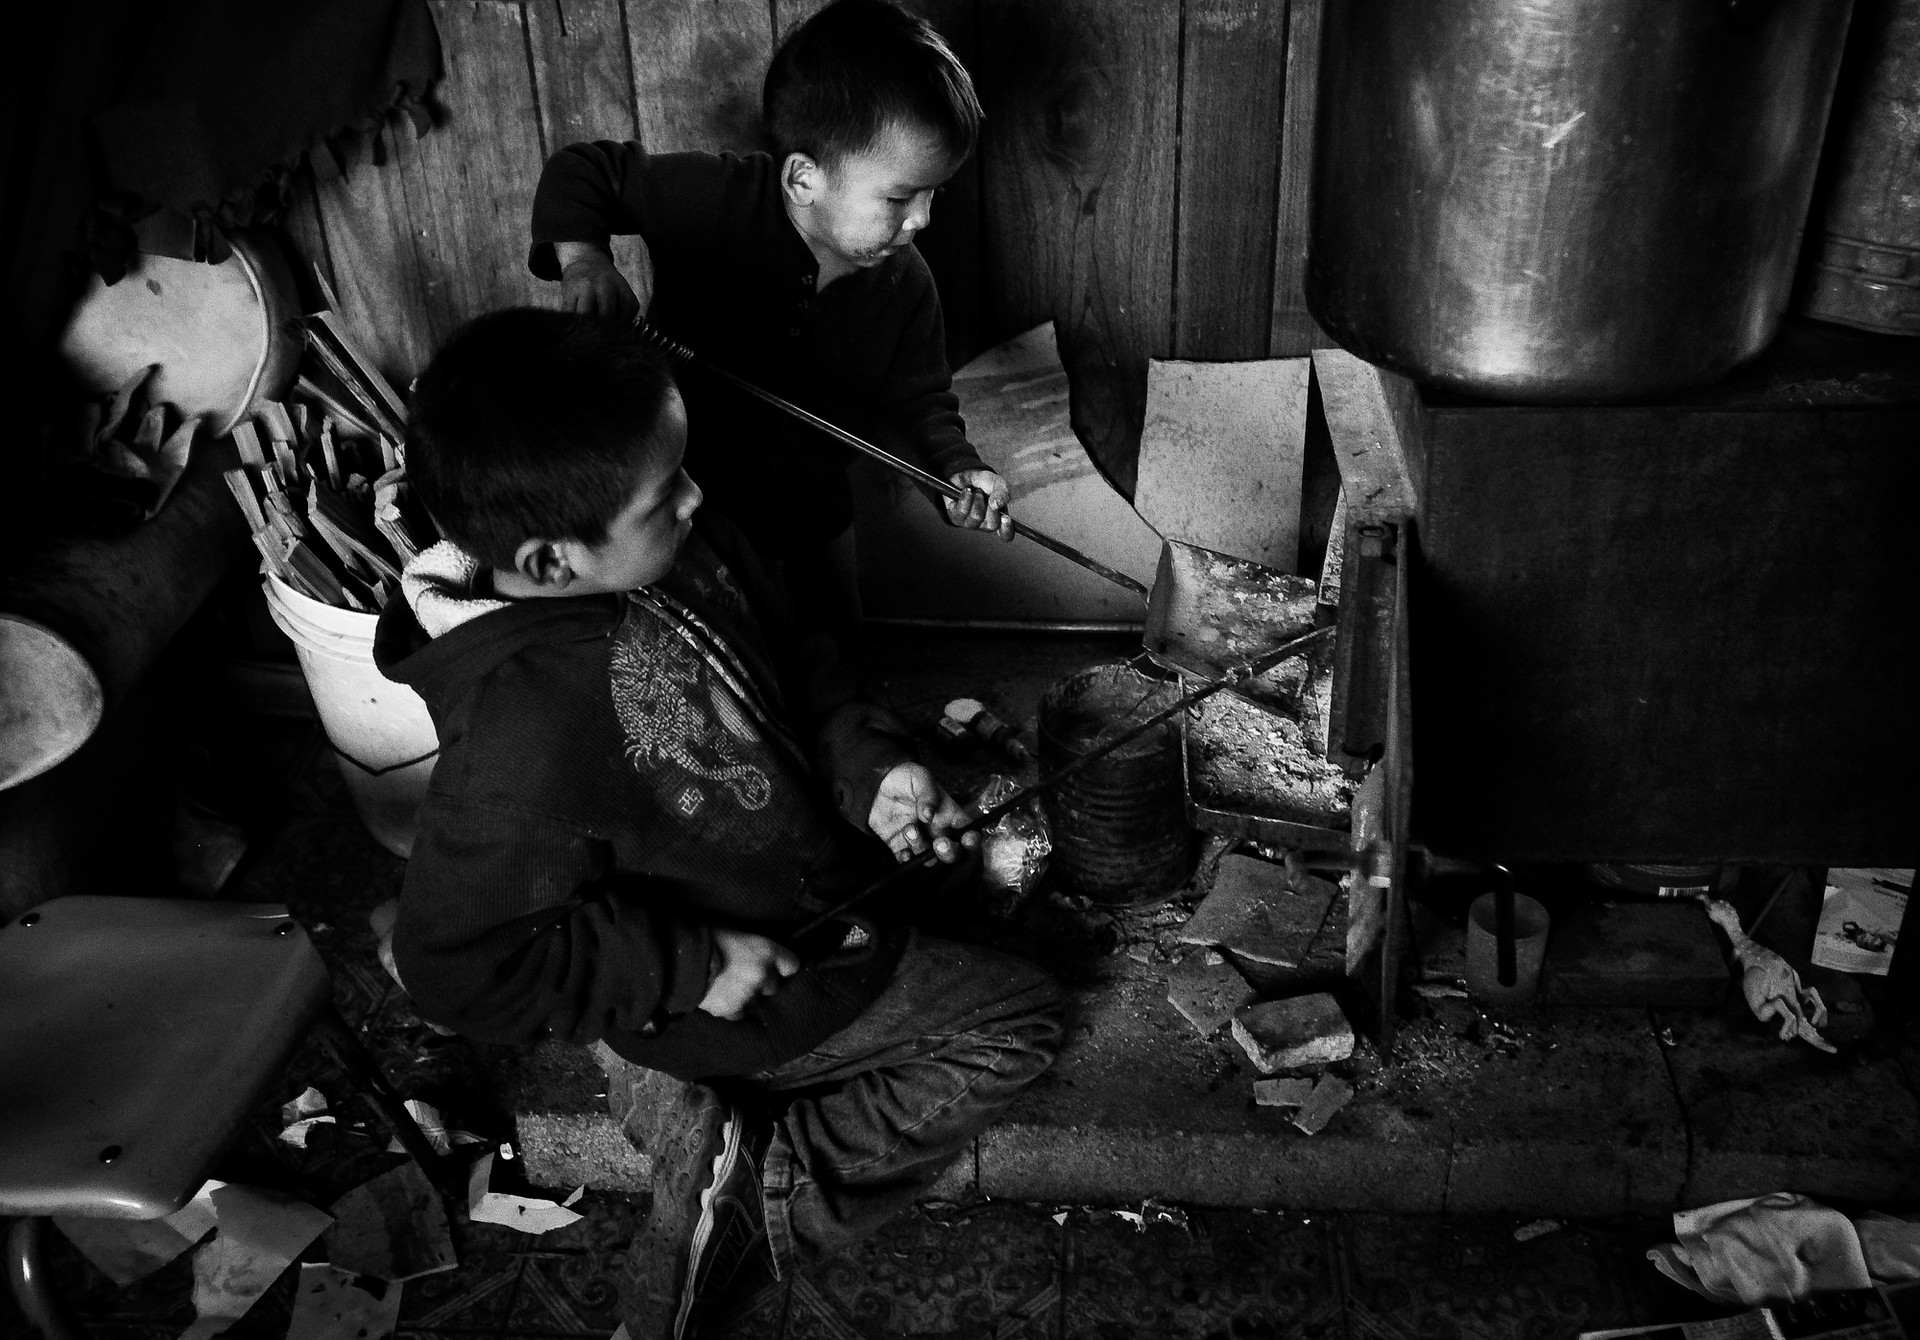 Ashkii Nez Whiterock, 2, and his older brother, Zeke Whiterock, 6, remove ash and add logs to the wood stove in the families trailer in Cameron, Arizona. The family lives in the former Bennett Freeze area without water or electricity and relies on the wood stove to keep the trailer warm during the winter. The wood is cut down in the forest and hauled from some 30 miles away and is costly for the family. Because the children's fatter died two months ago, now Zeke, 6, takes on the tradition of tending to the fire for the family, a chore he used to watch his Father do.